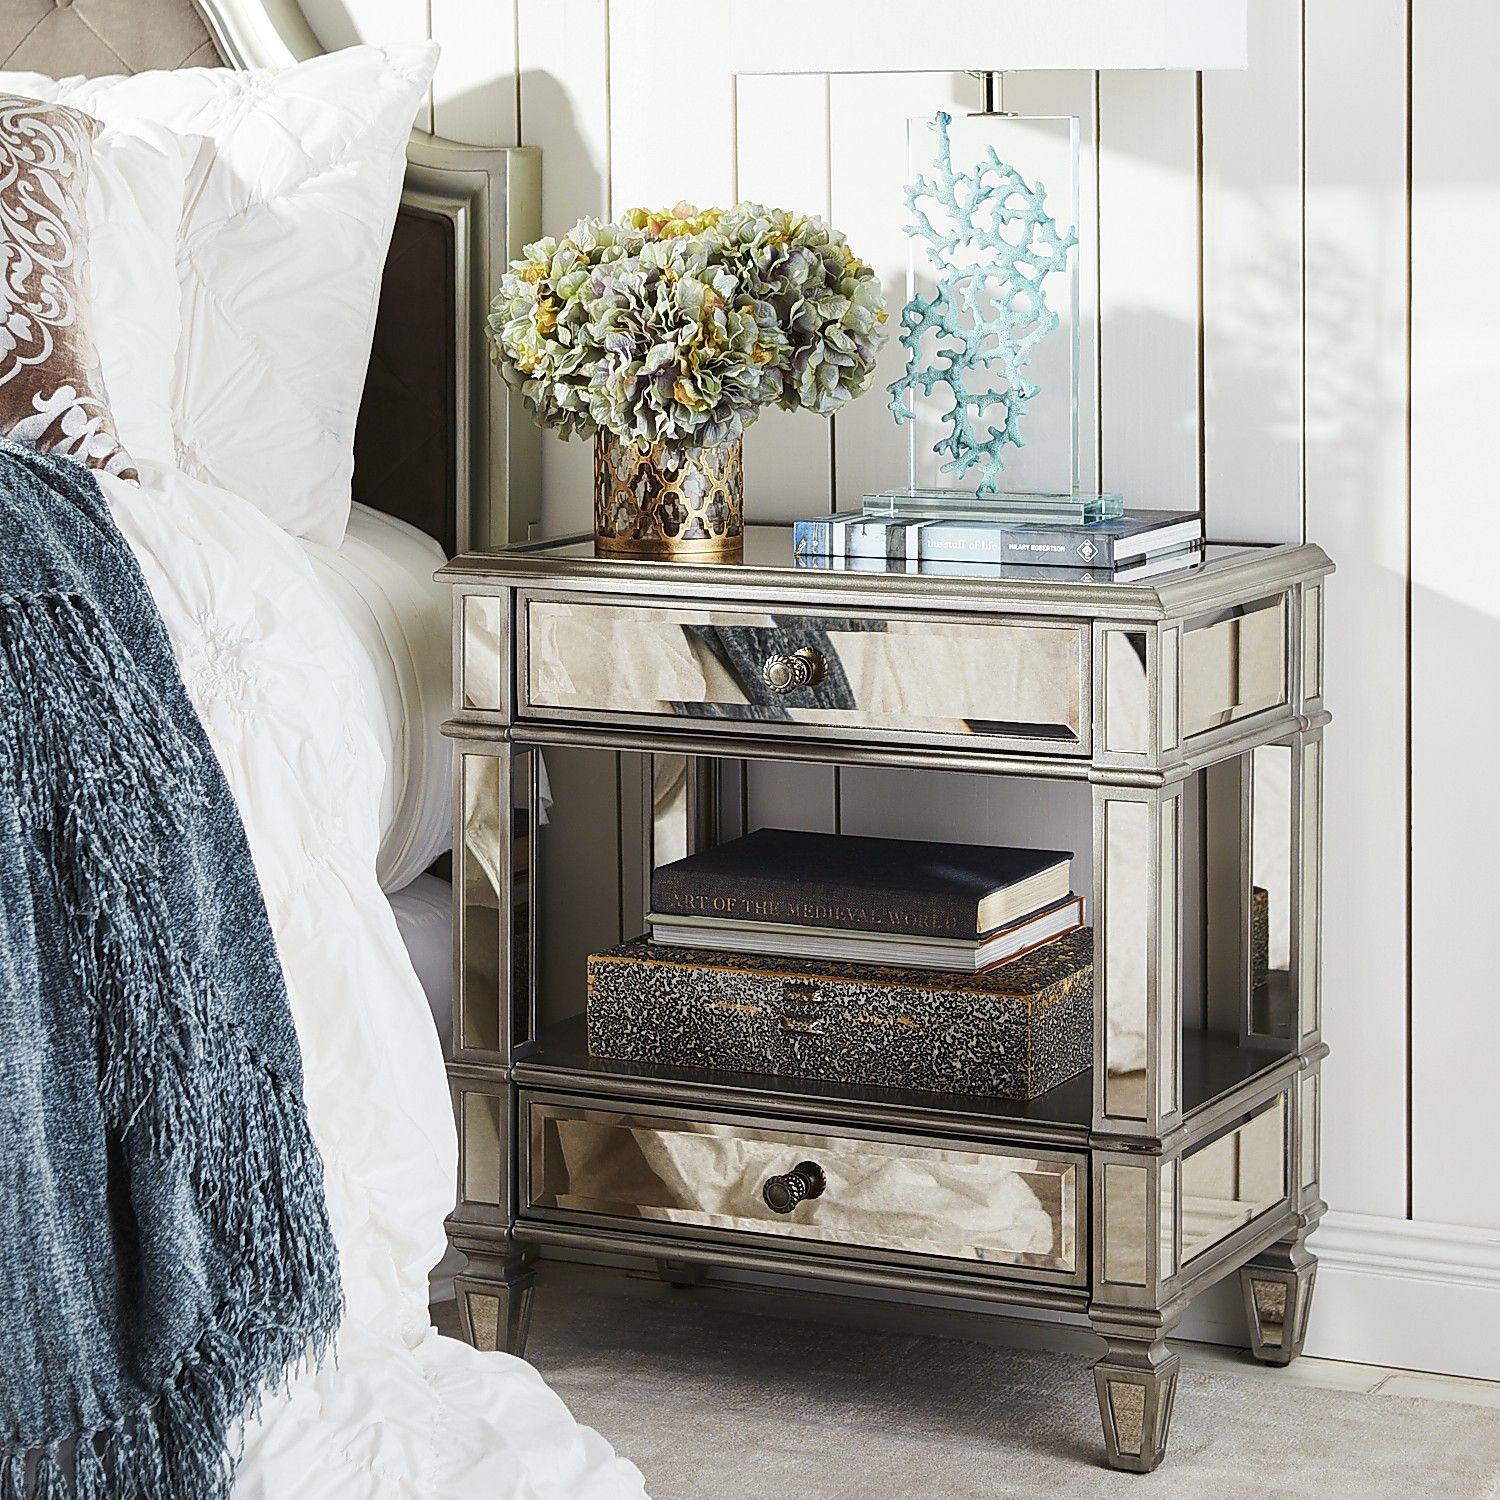 Hayworth mirrored silver 2 drawer nightstand